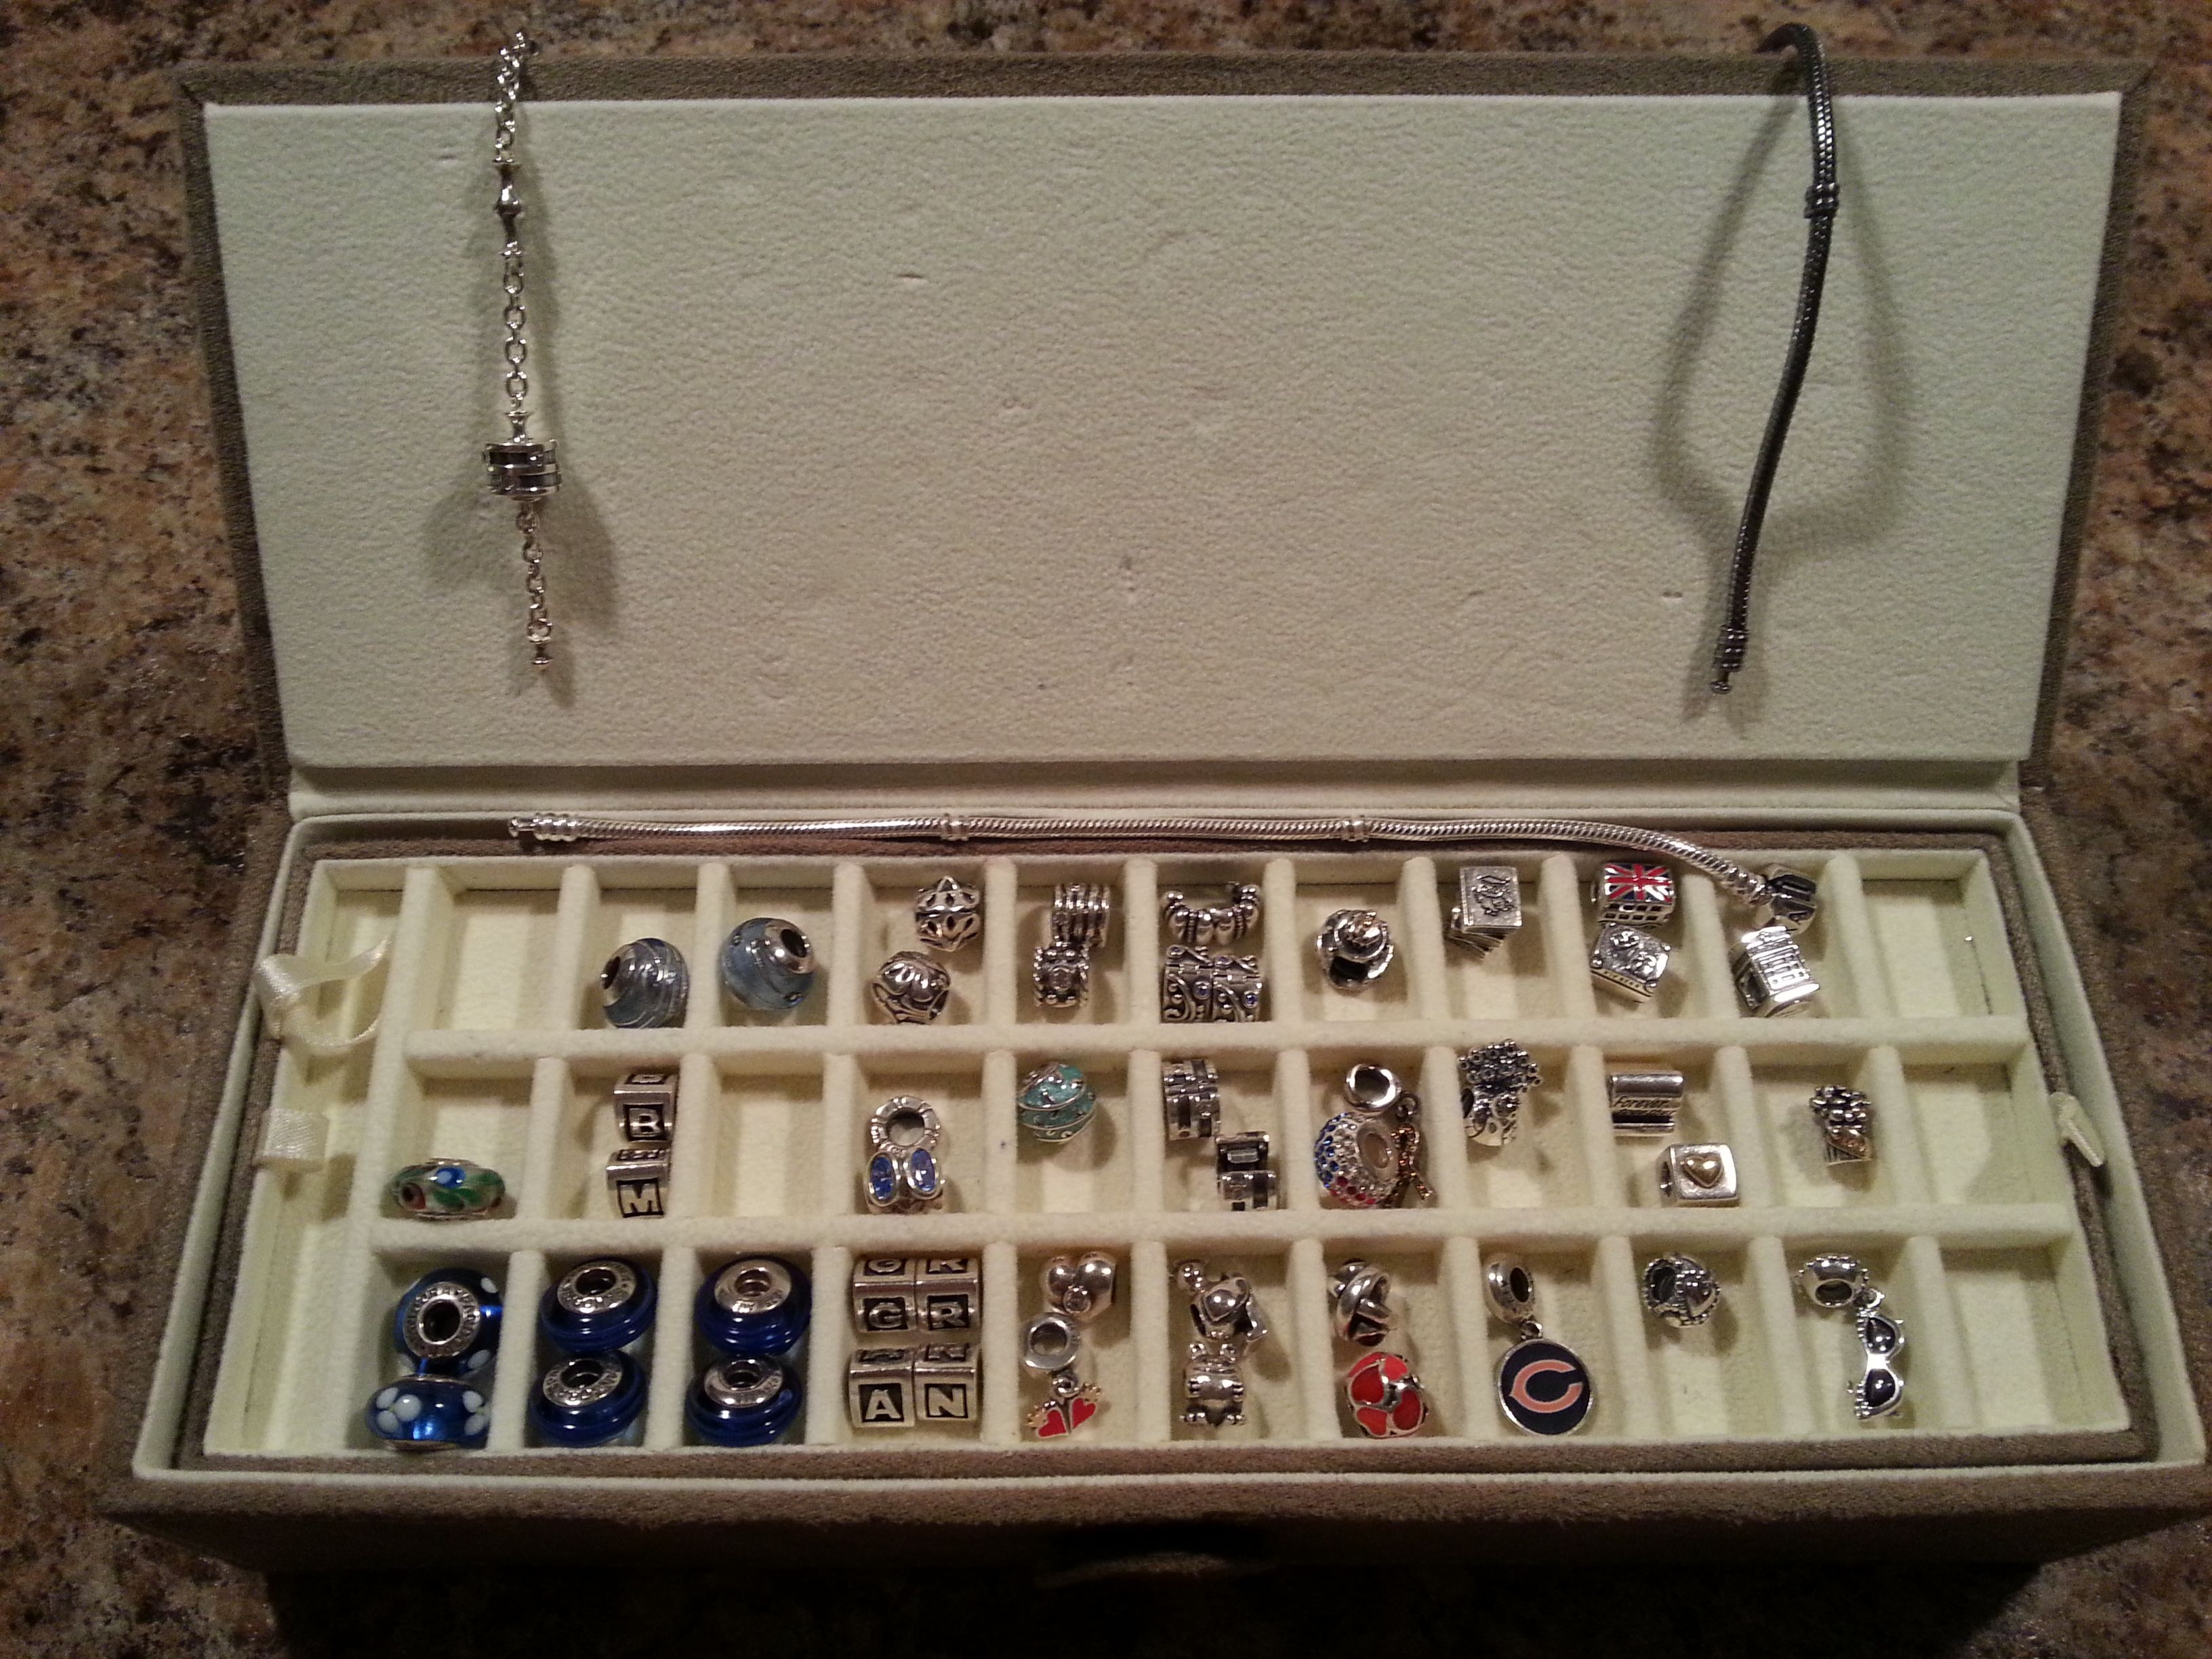 Jean Gascoigne This is the Pandora Jewelry Box that Jared sometimes